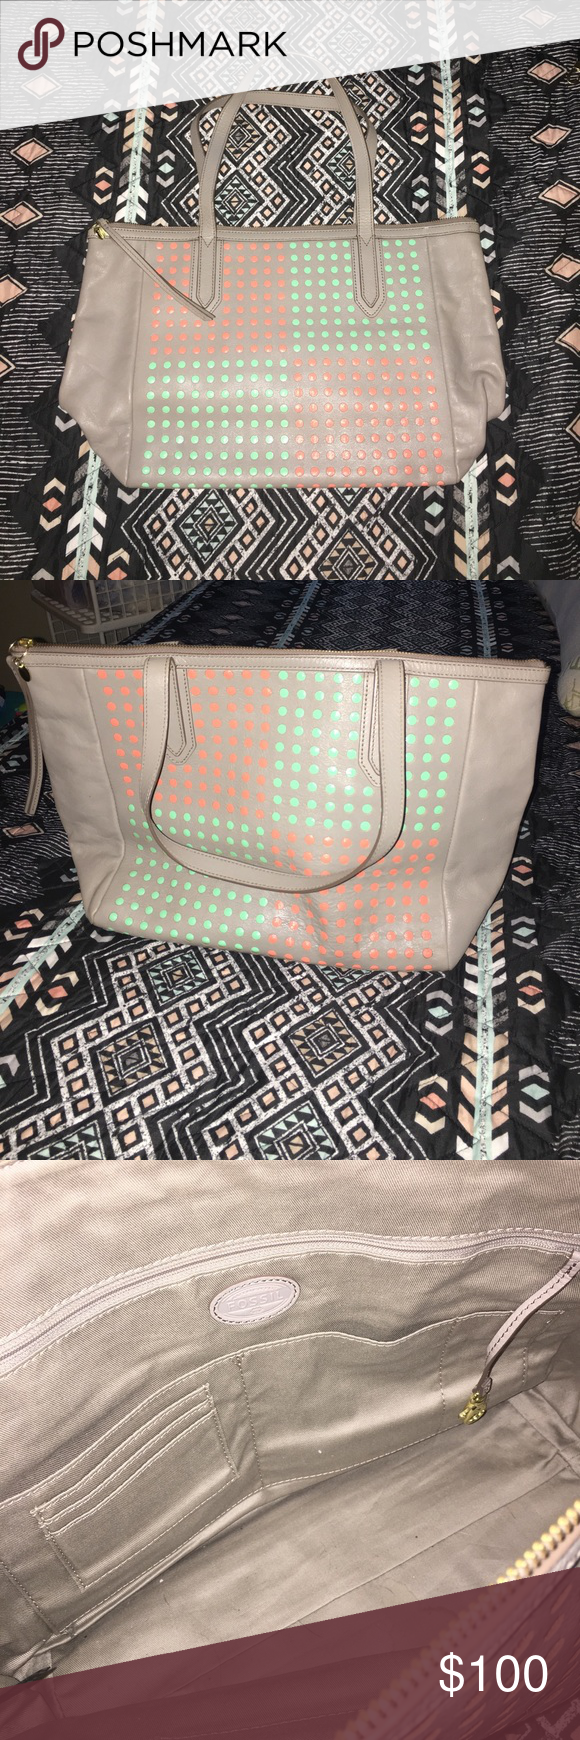 Adorable pink and teal Fossil purse In perfect condition and unique color and design. Really goes great with anything. Fossil Bags